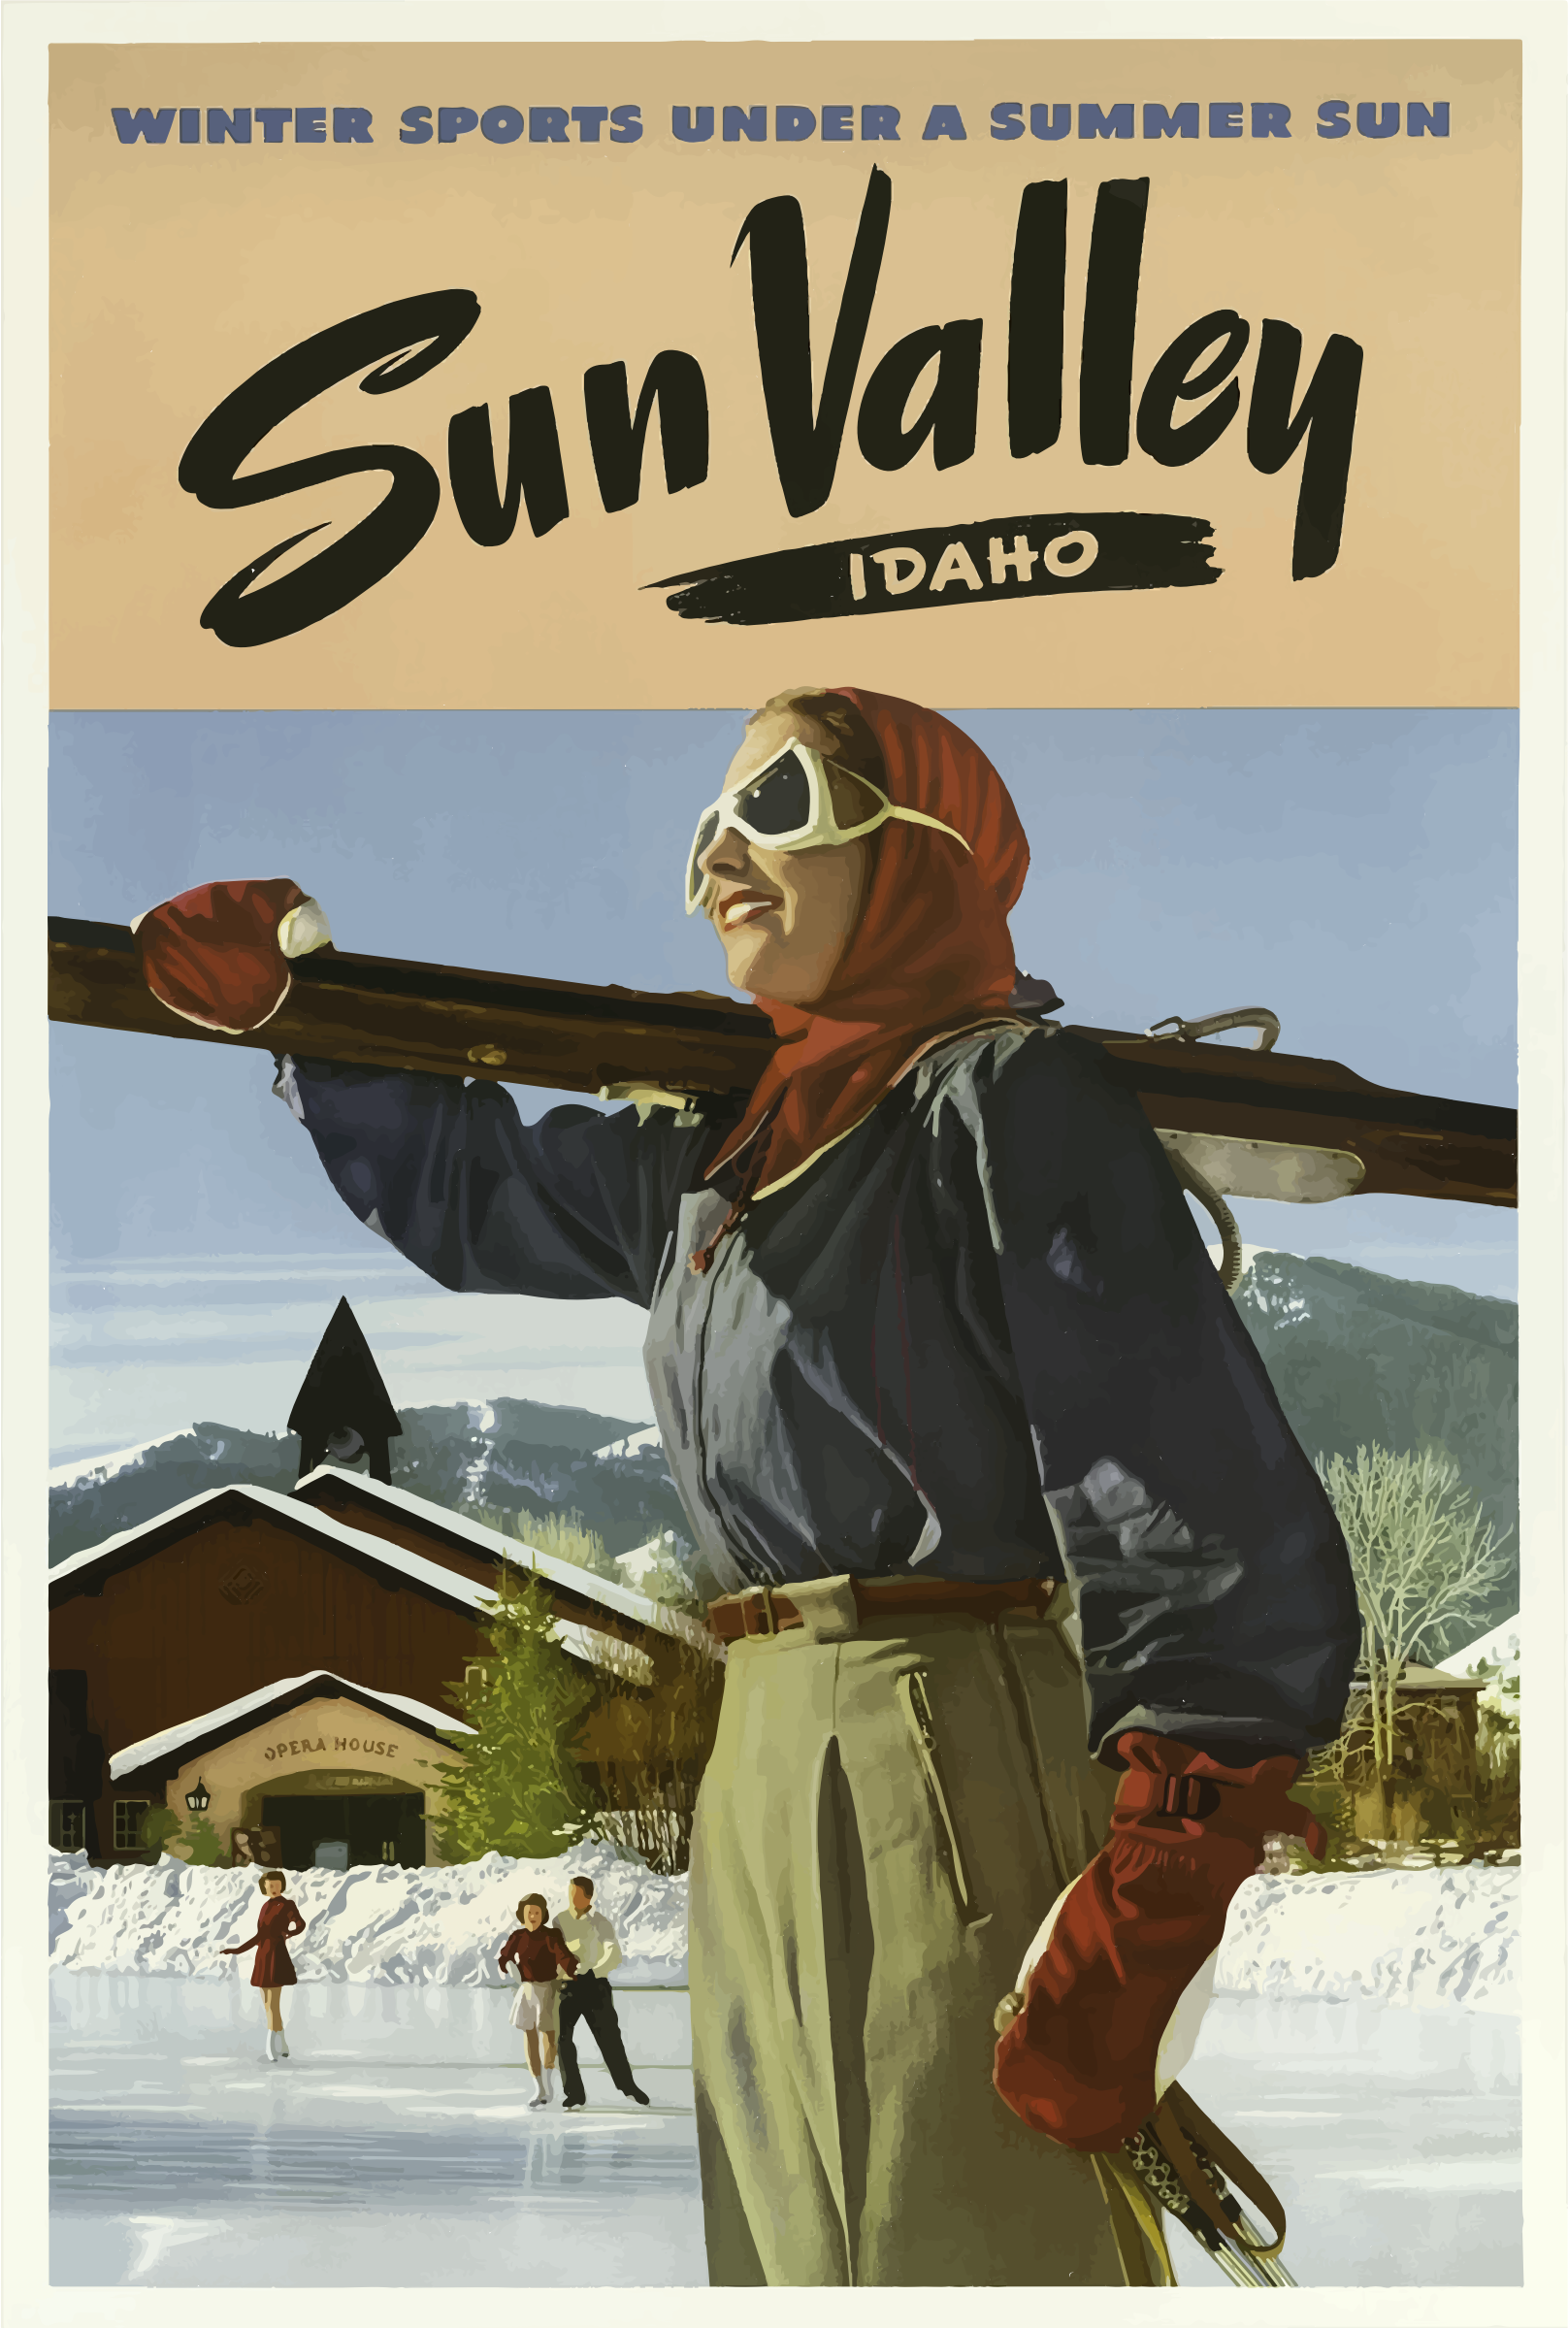 Vintage Travel Poster Sun Valley Idaho 2 by GDJ